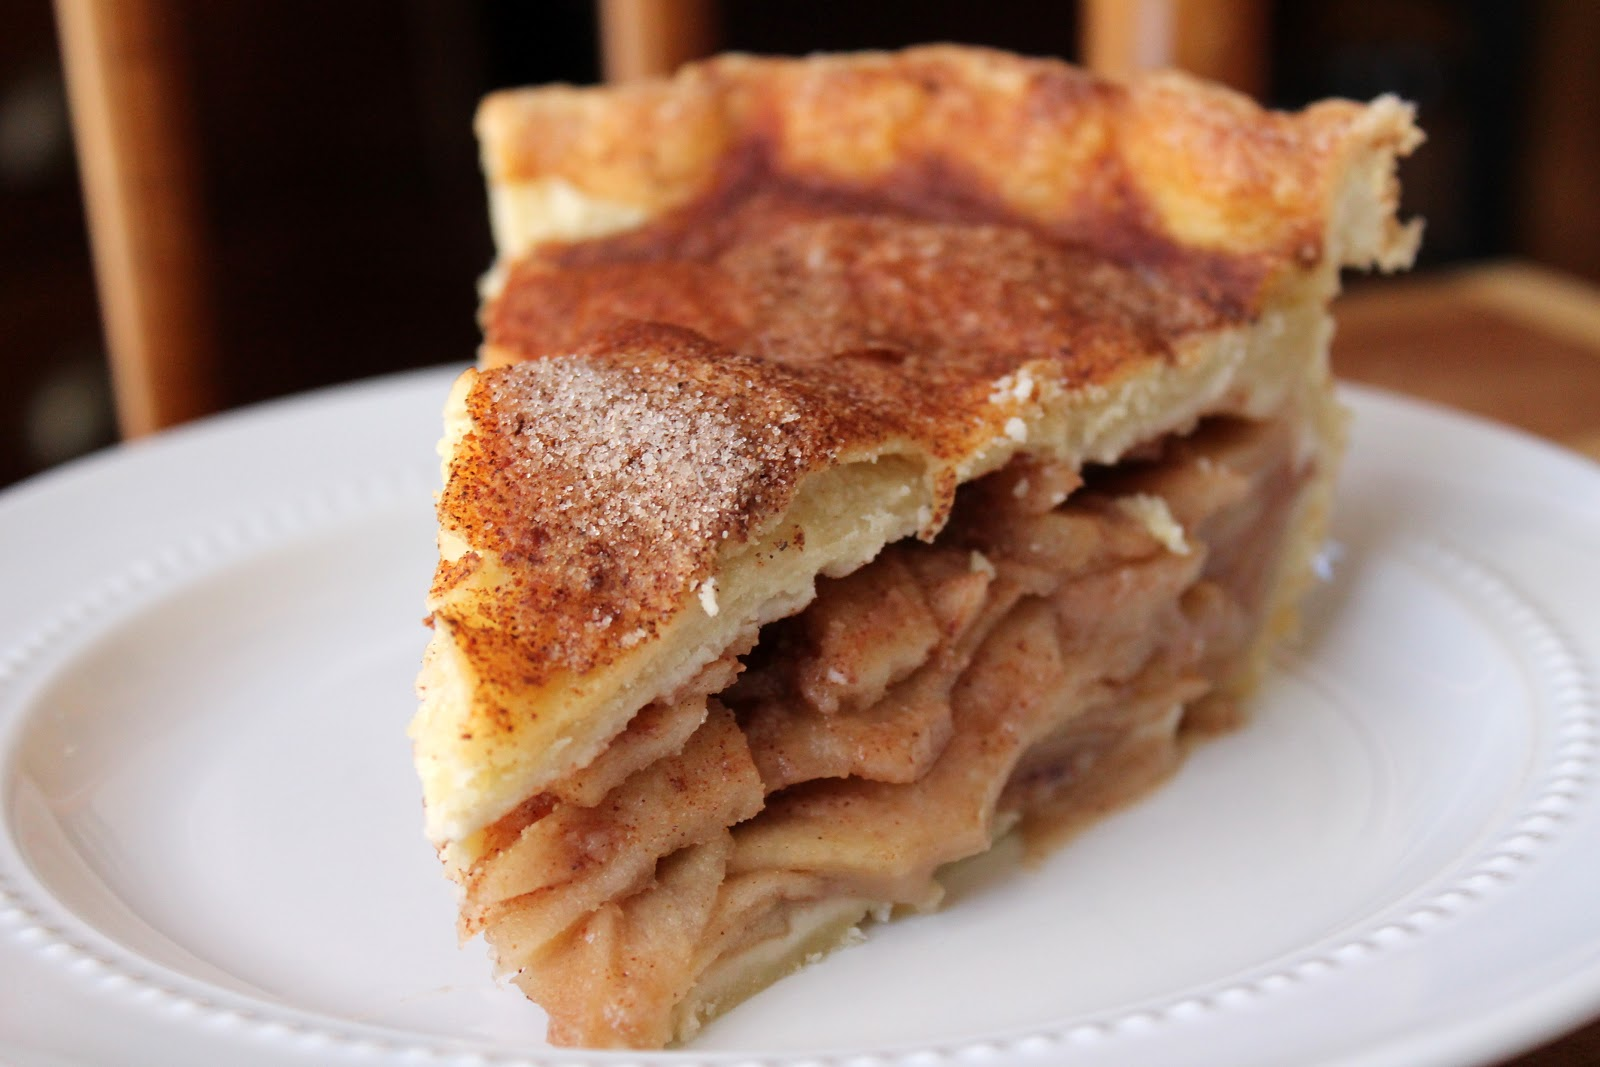 Bakestravaganza: Old Fashioned Apple Pie